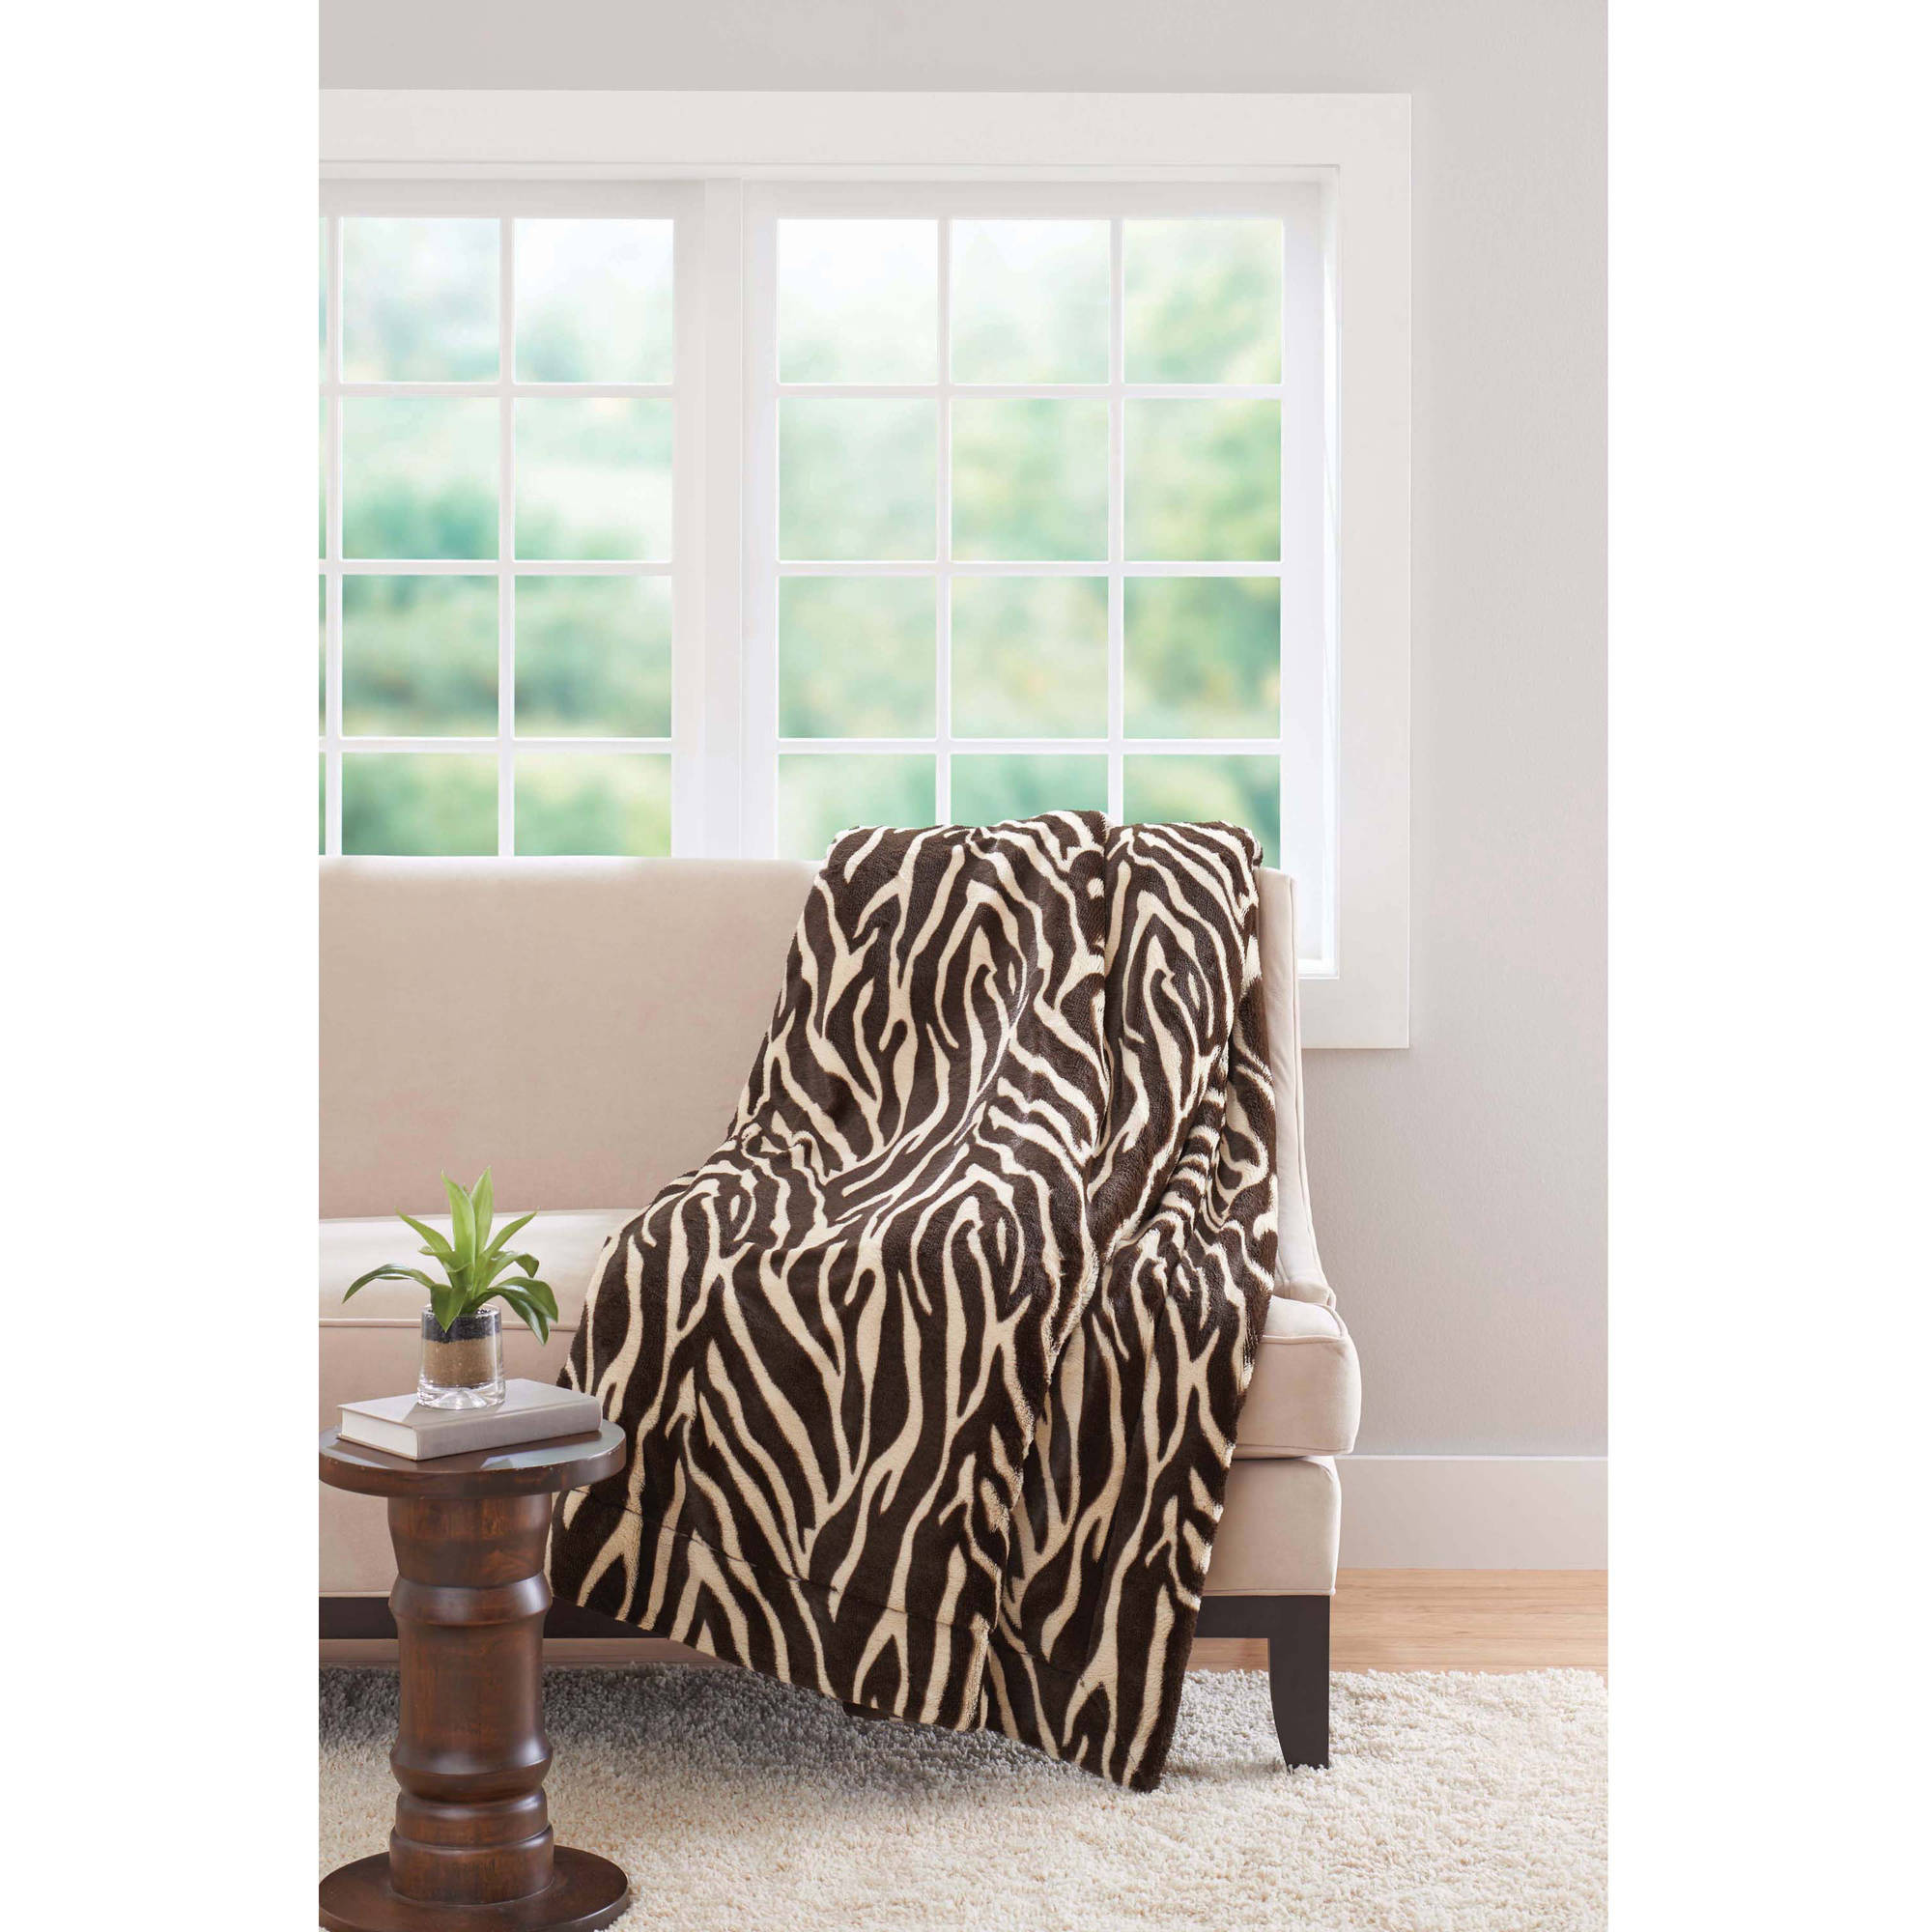 Merveilleux Better Homes And Gardens Faux Fur Throw Blanket   Walmart.com